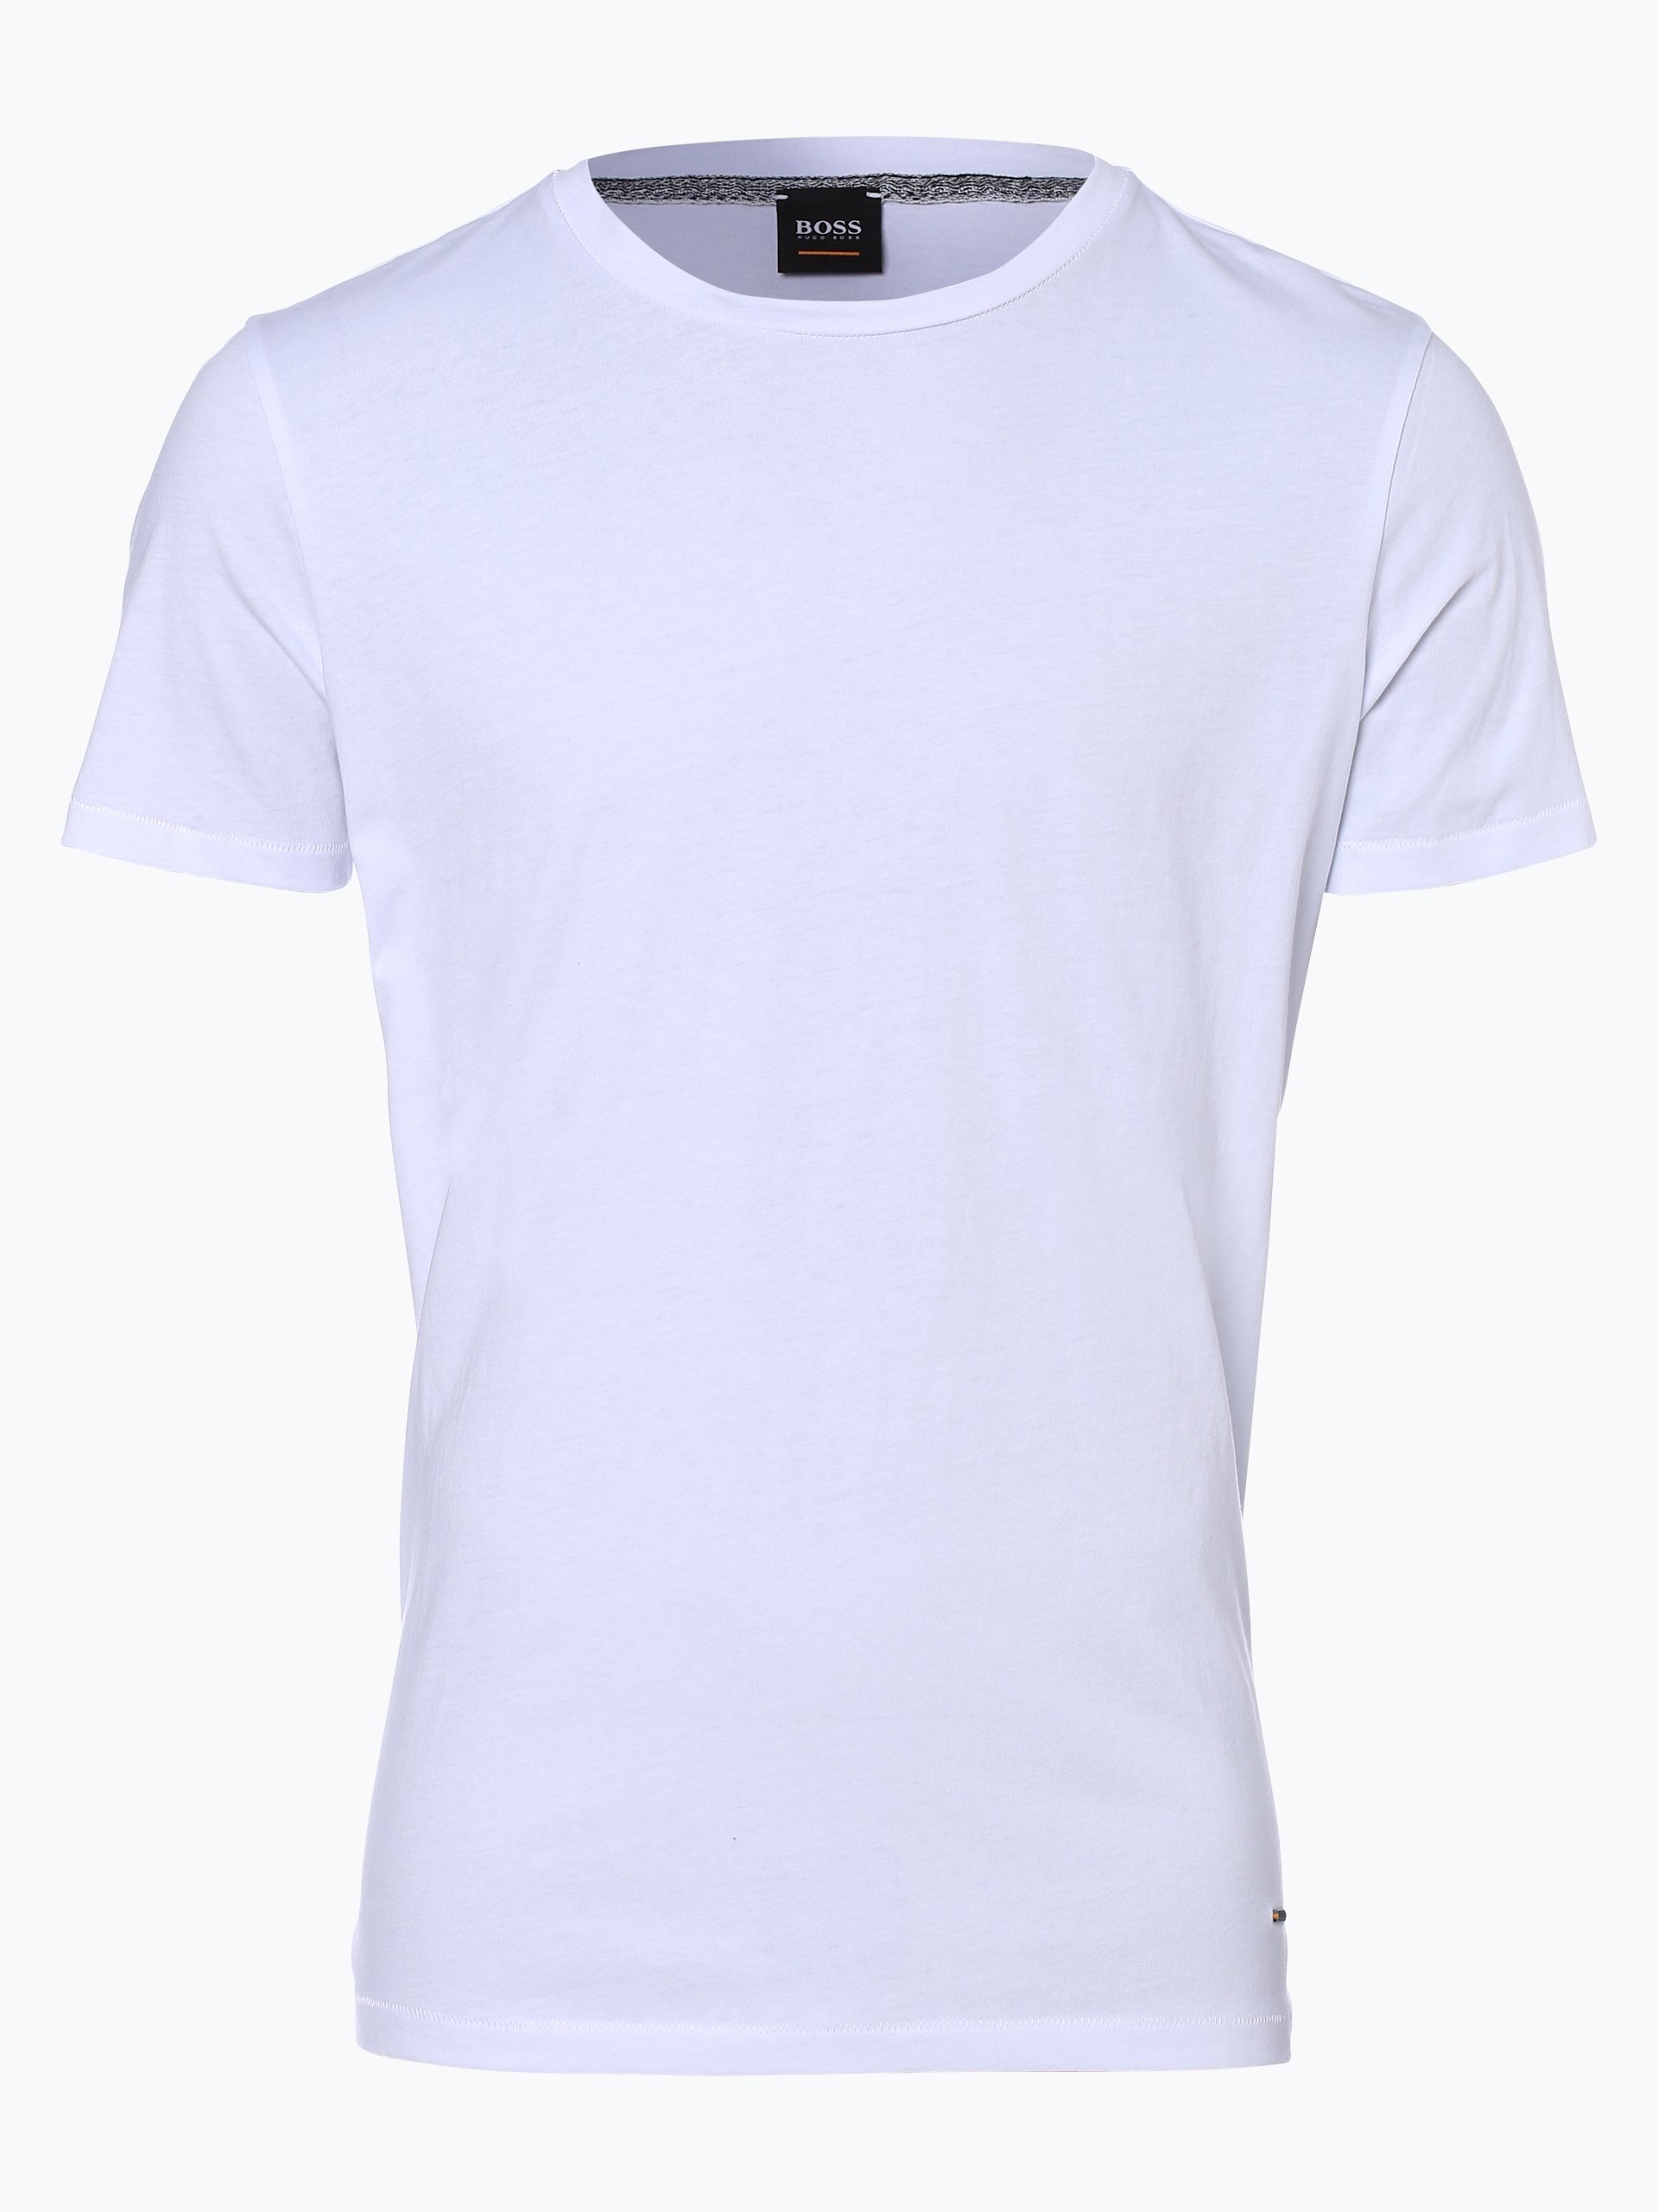 BOSS Casual T-shirt męski – Typer